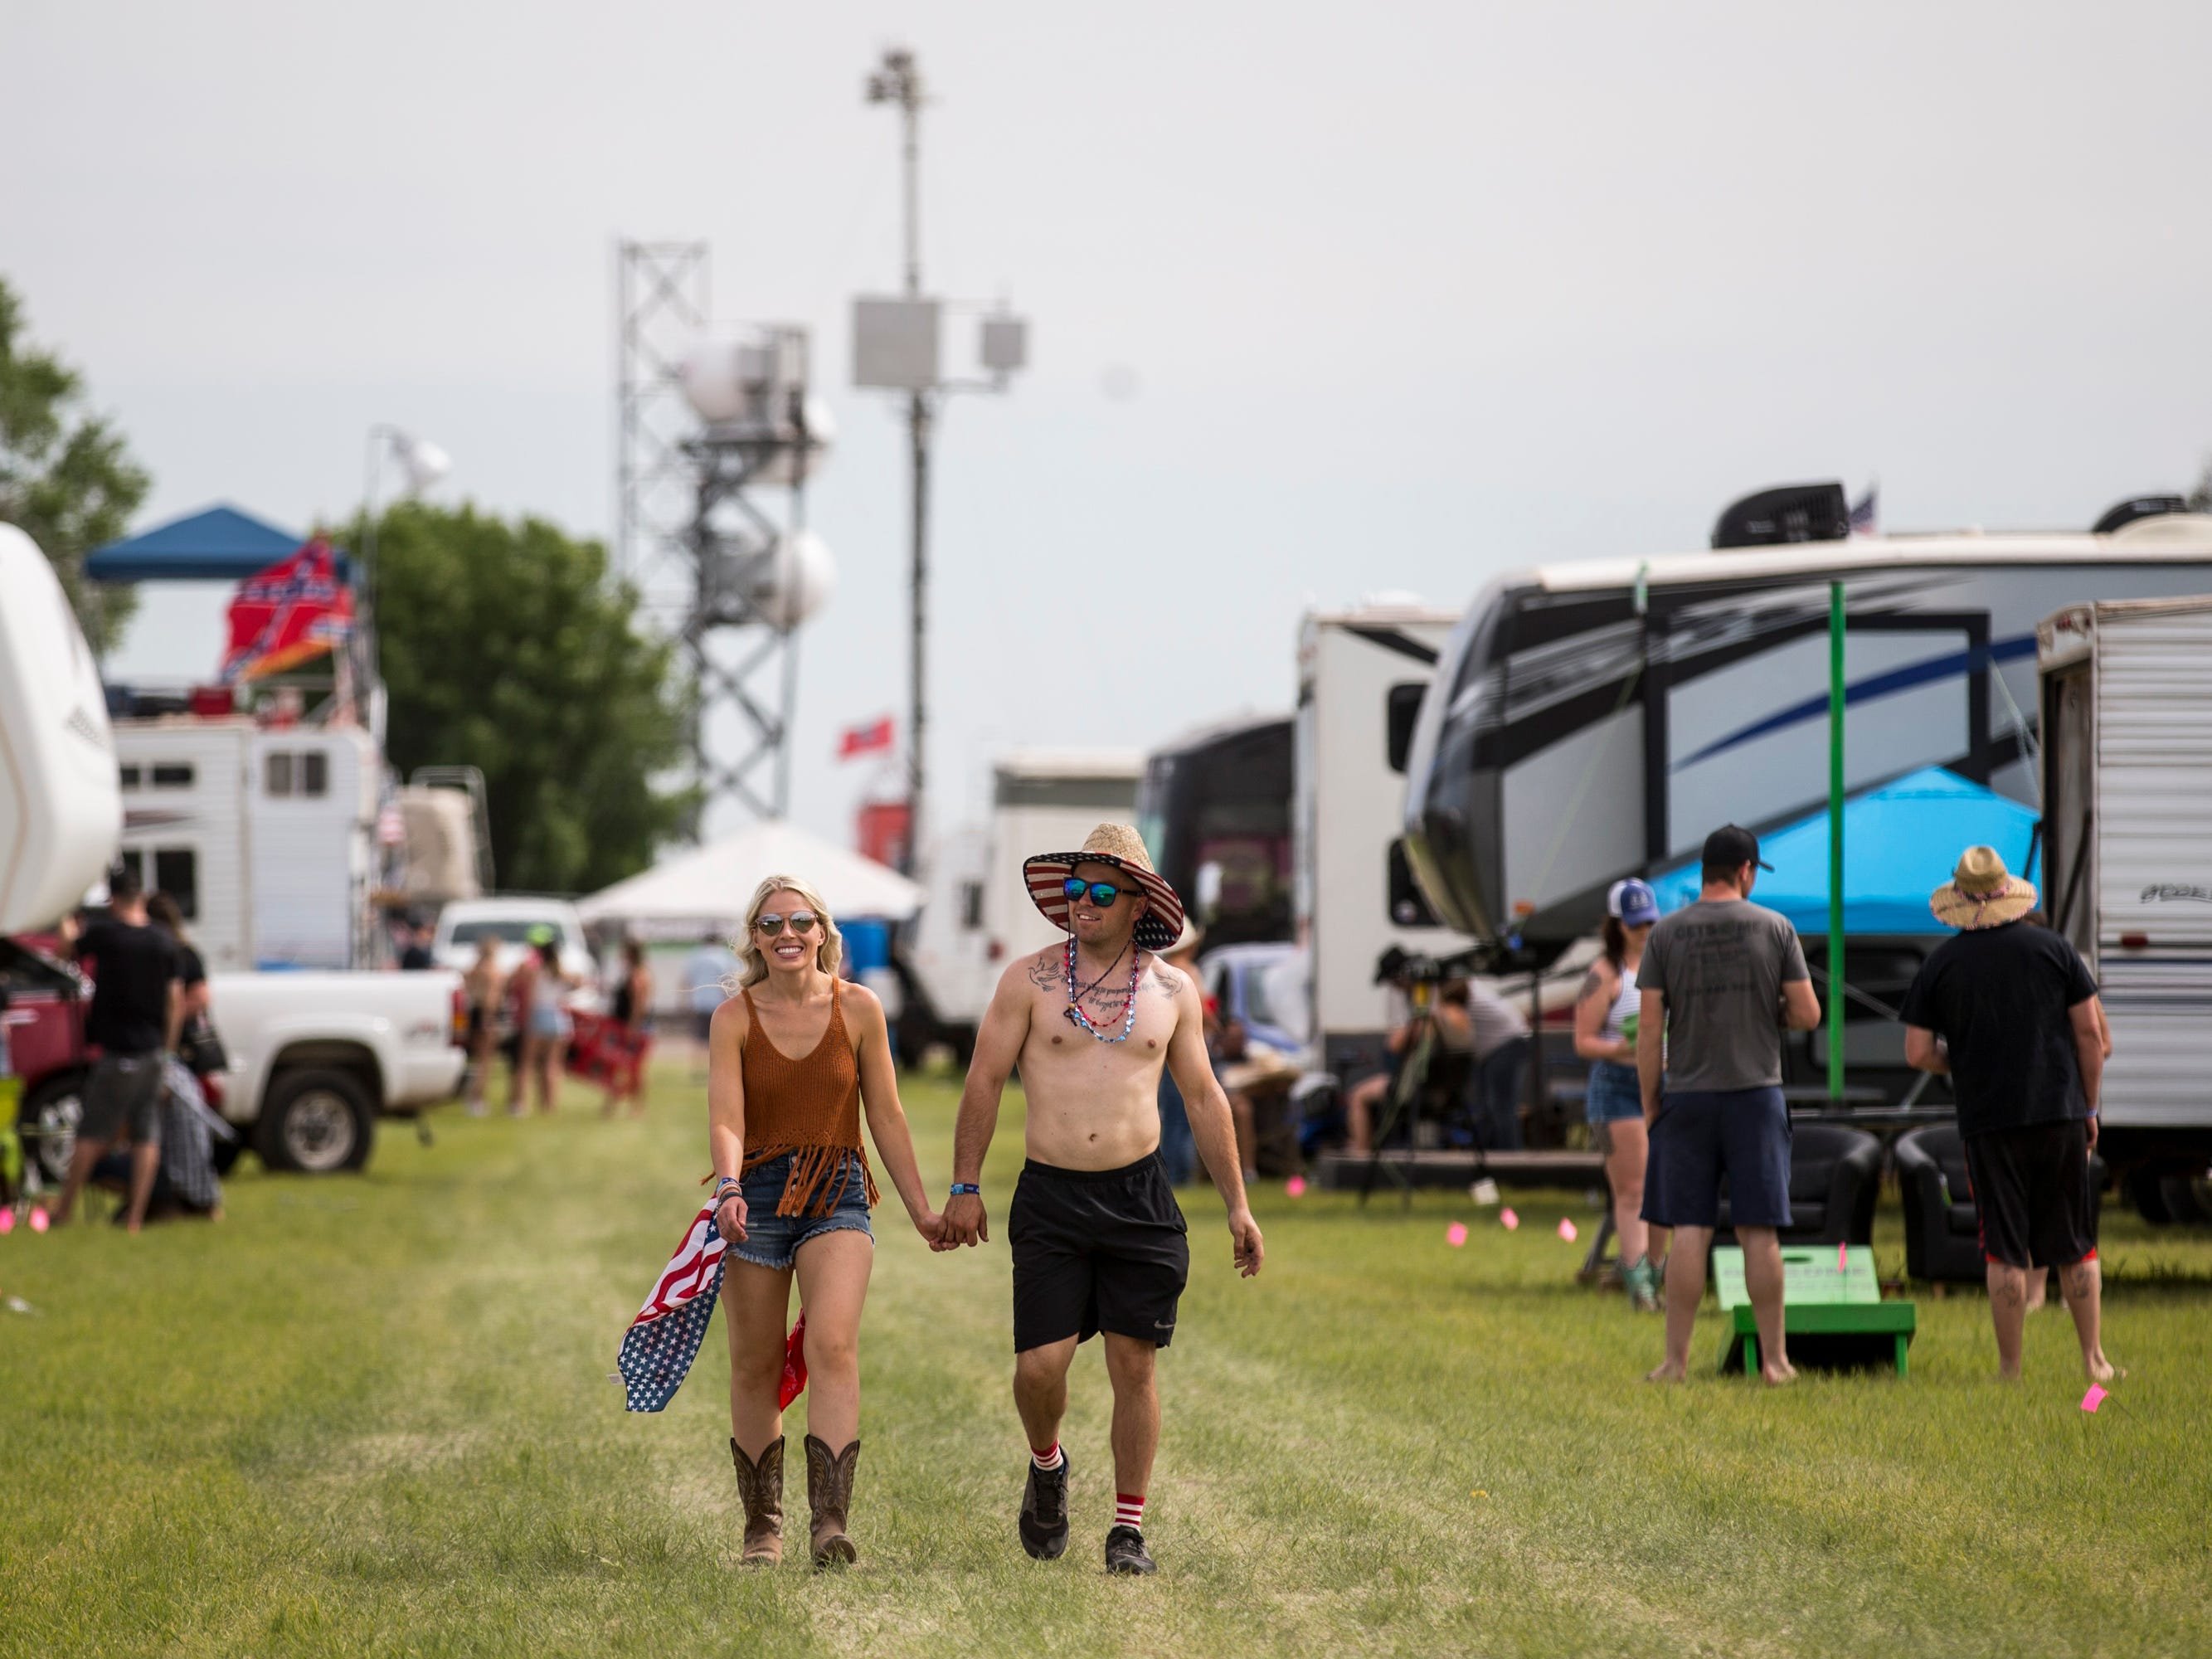 Kayla Walter and Ryan Walter walk through a campsite on April 11, 2019, during Day 1 of Country Thunder Arizona in Florence.